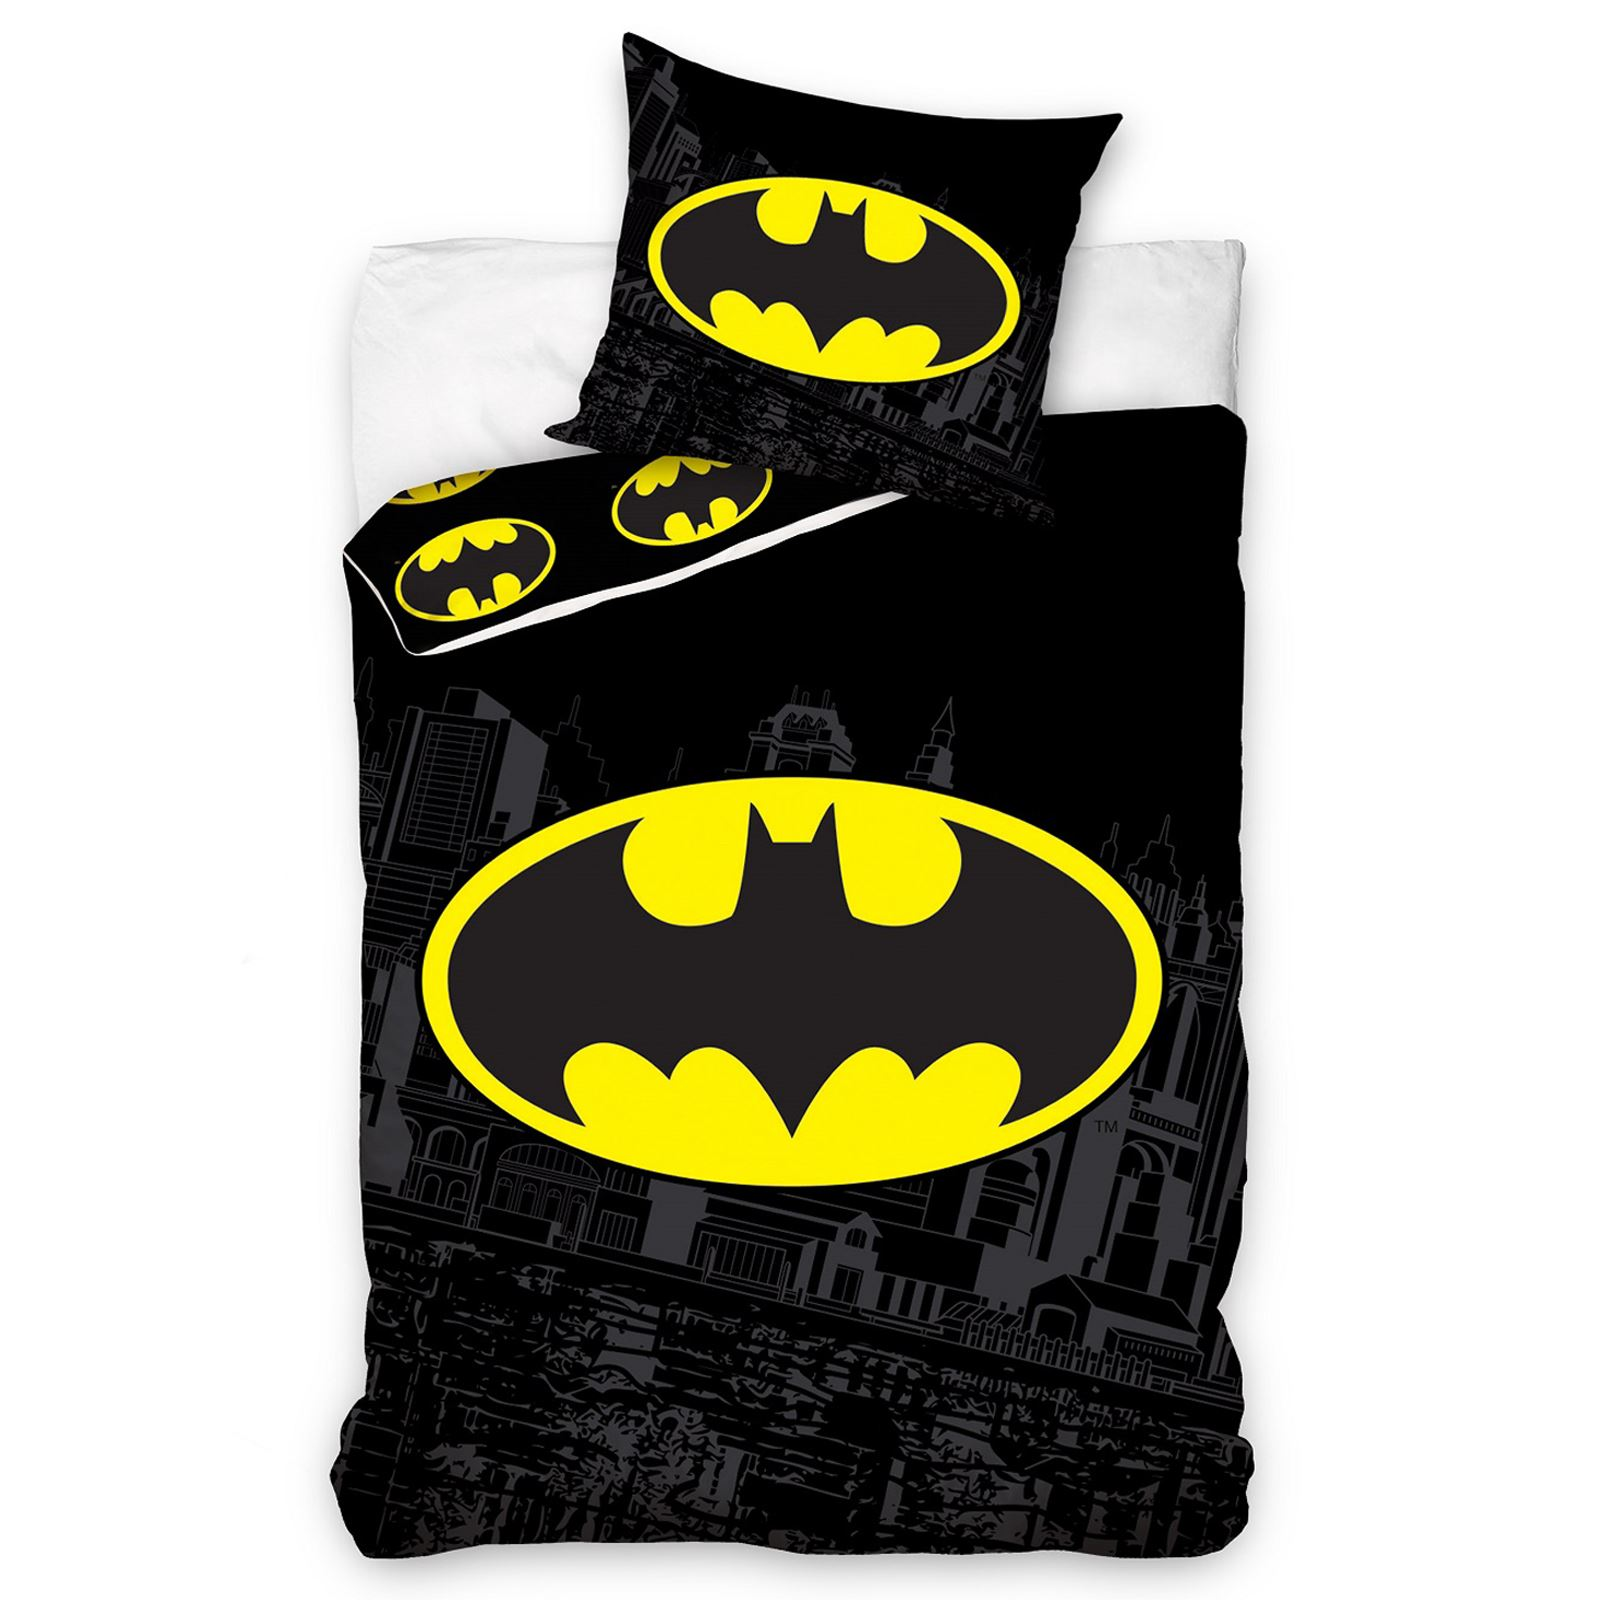 DC COMICS BATMAN & SUPERMAN DUVET COVER SET BEDDING KIDS BOYS